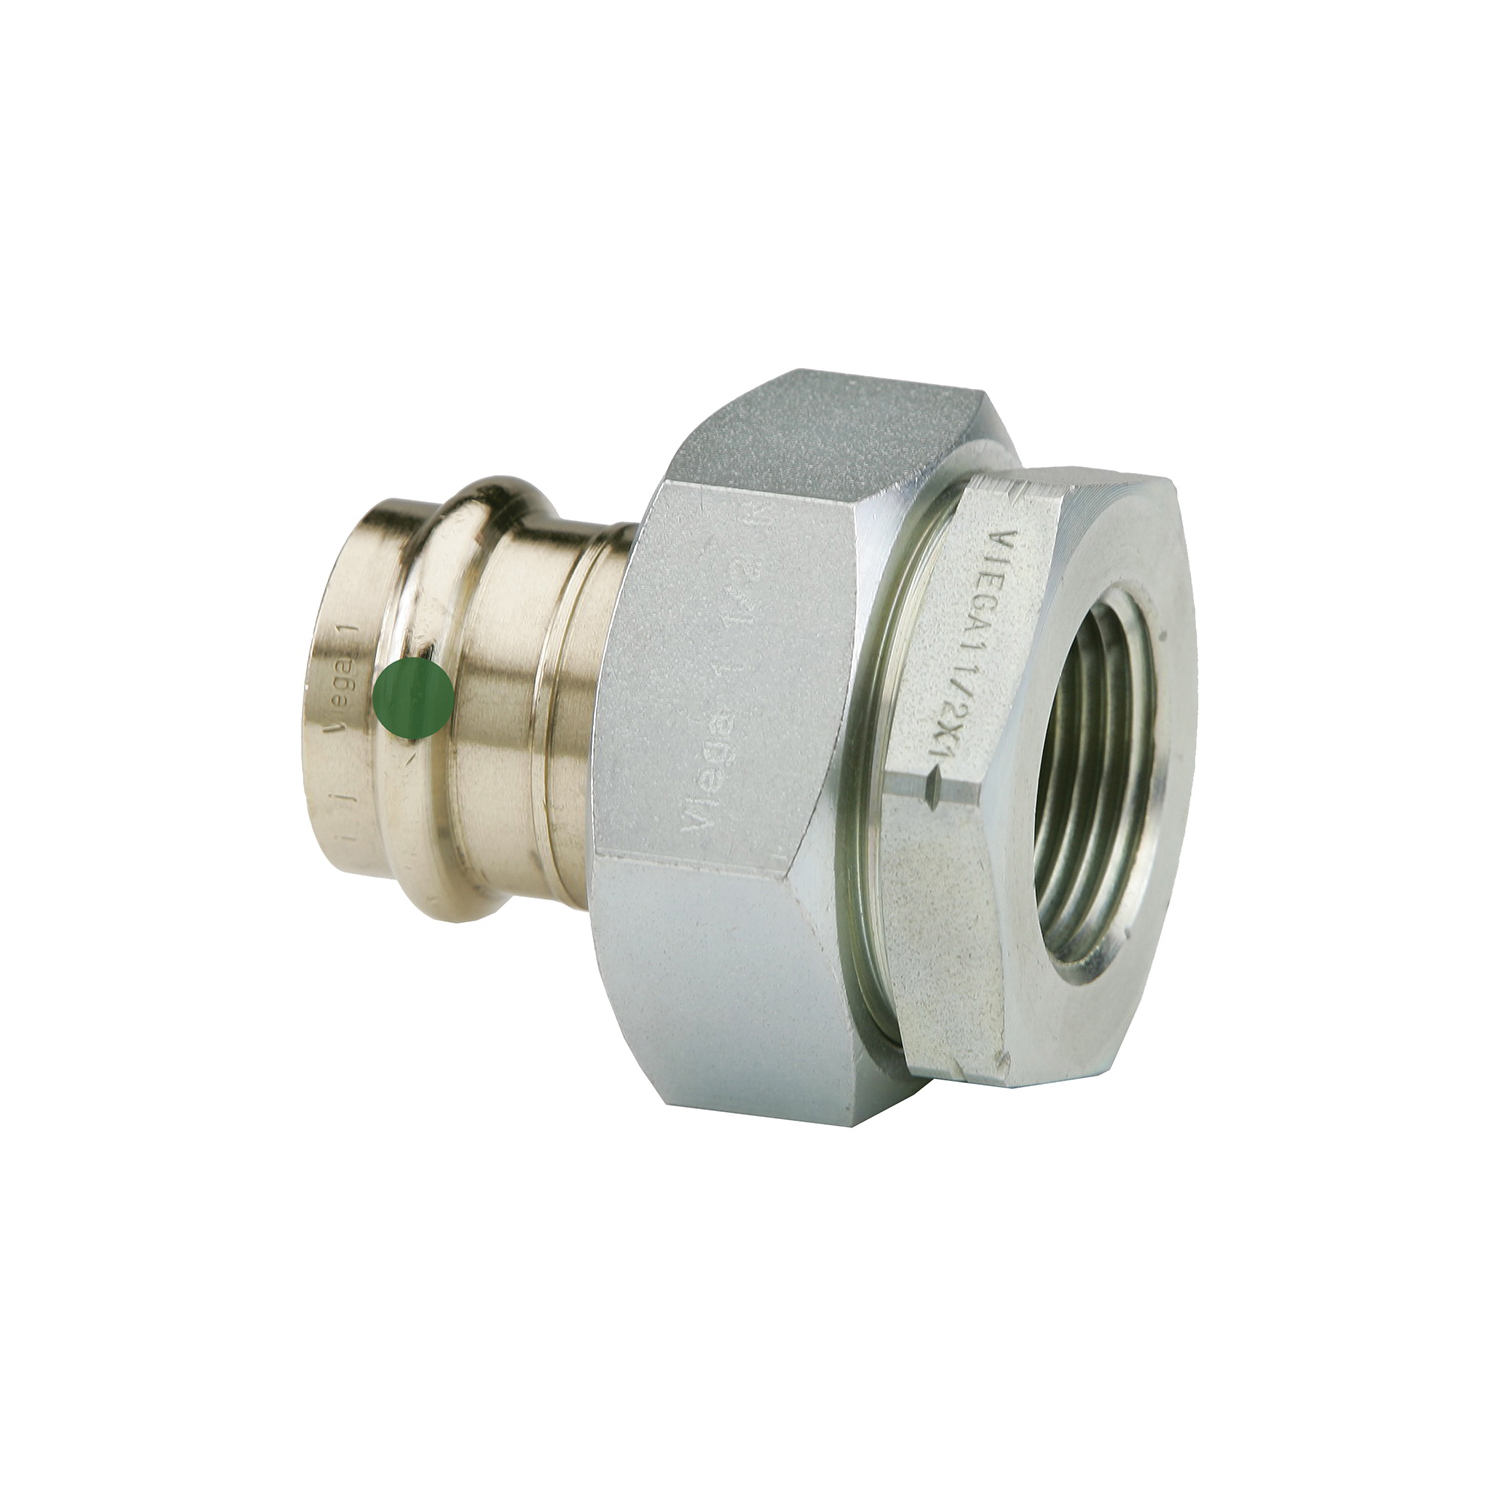 ProPress® 79160 Pipe Dielectric Union, 3/4 in, Press x FNPT, Bronze, Import